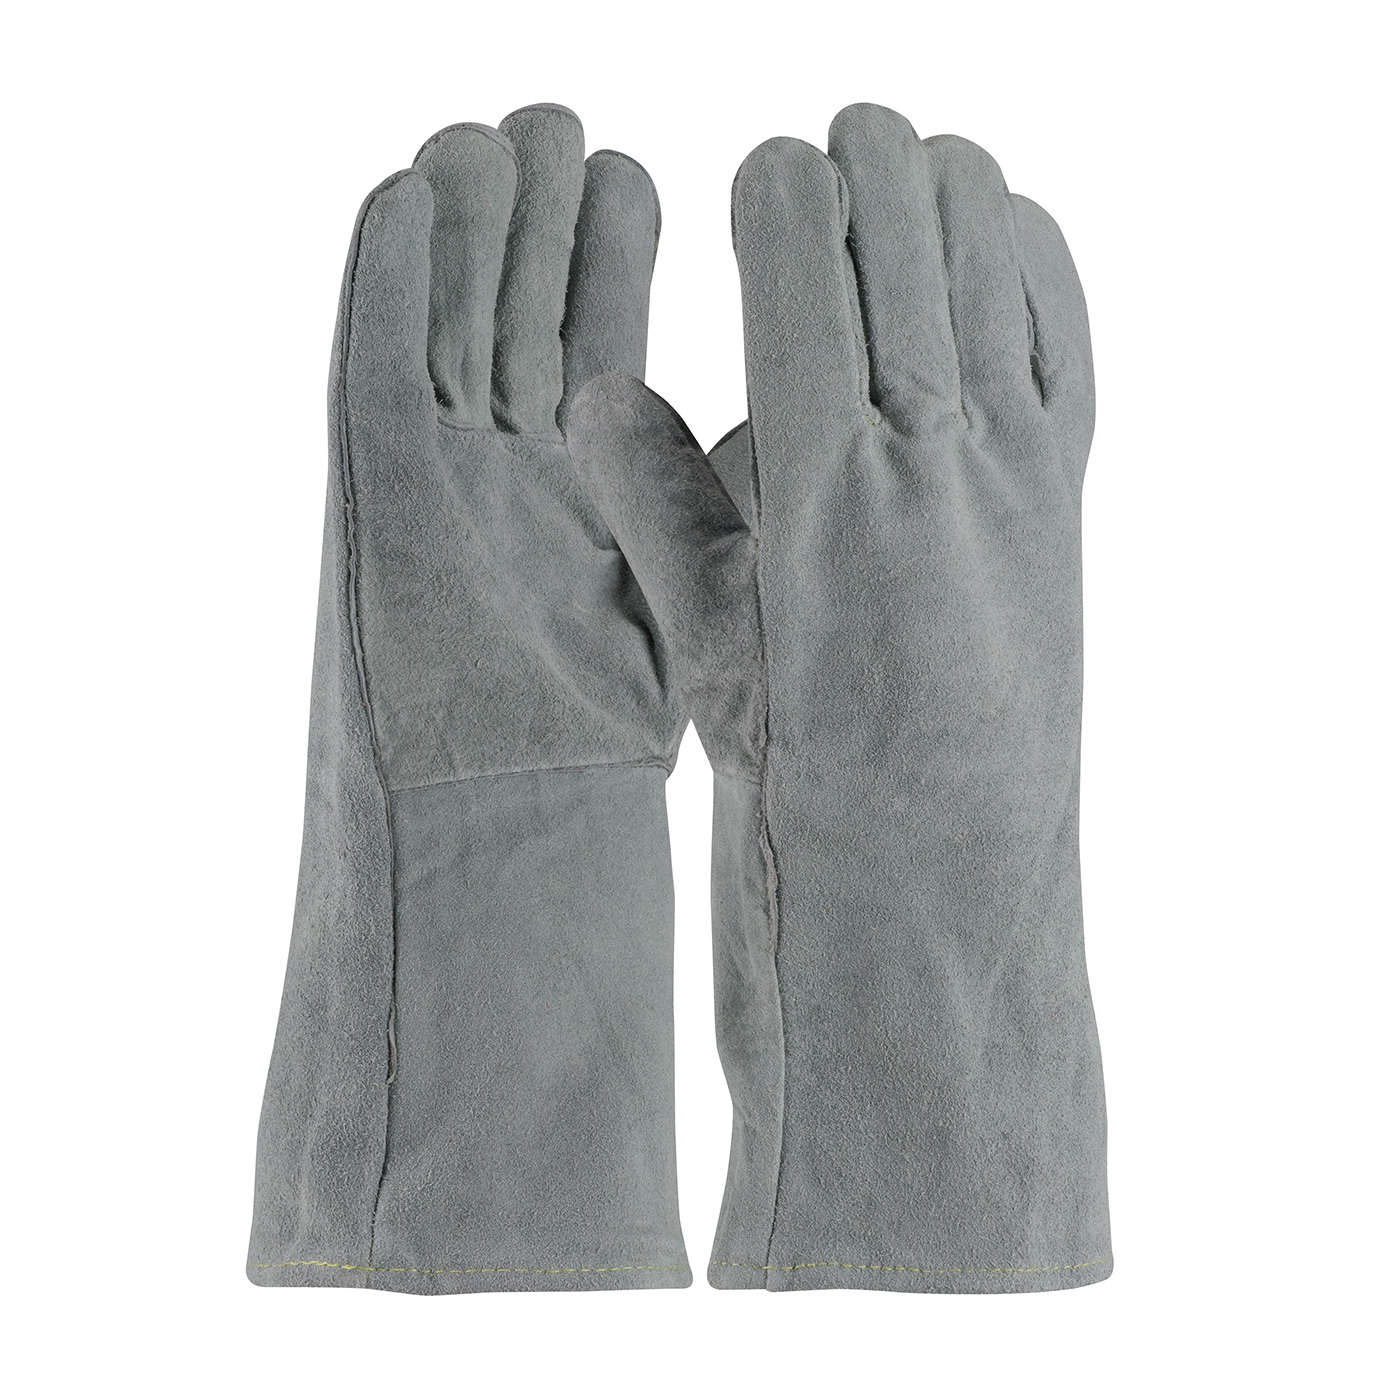 #73-888A PIP® Split Cowhide Leather Welder's Glove with Cotton Liner